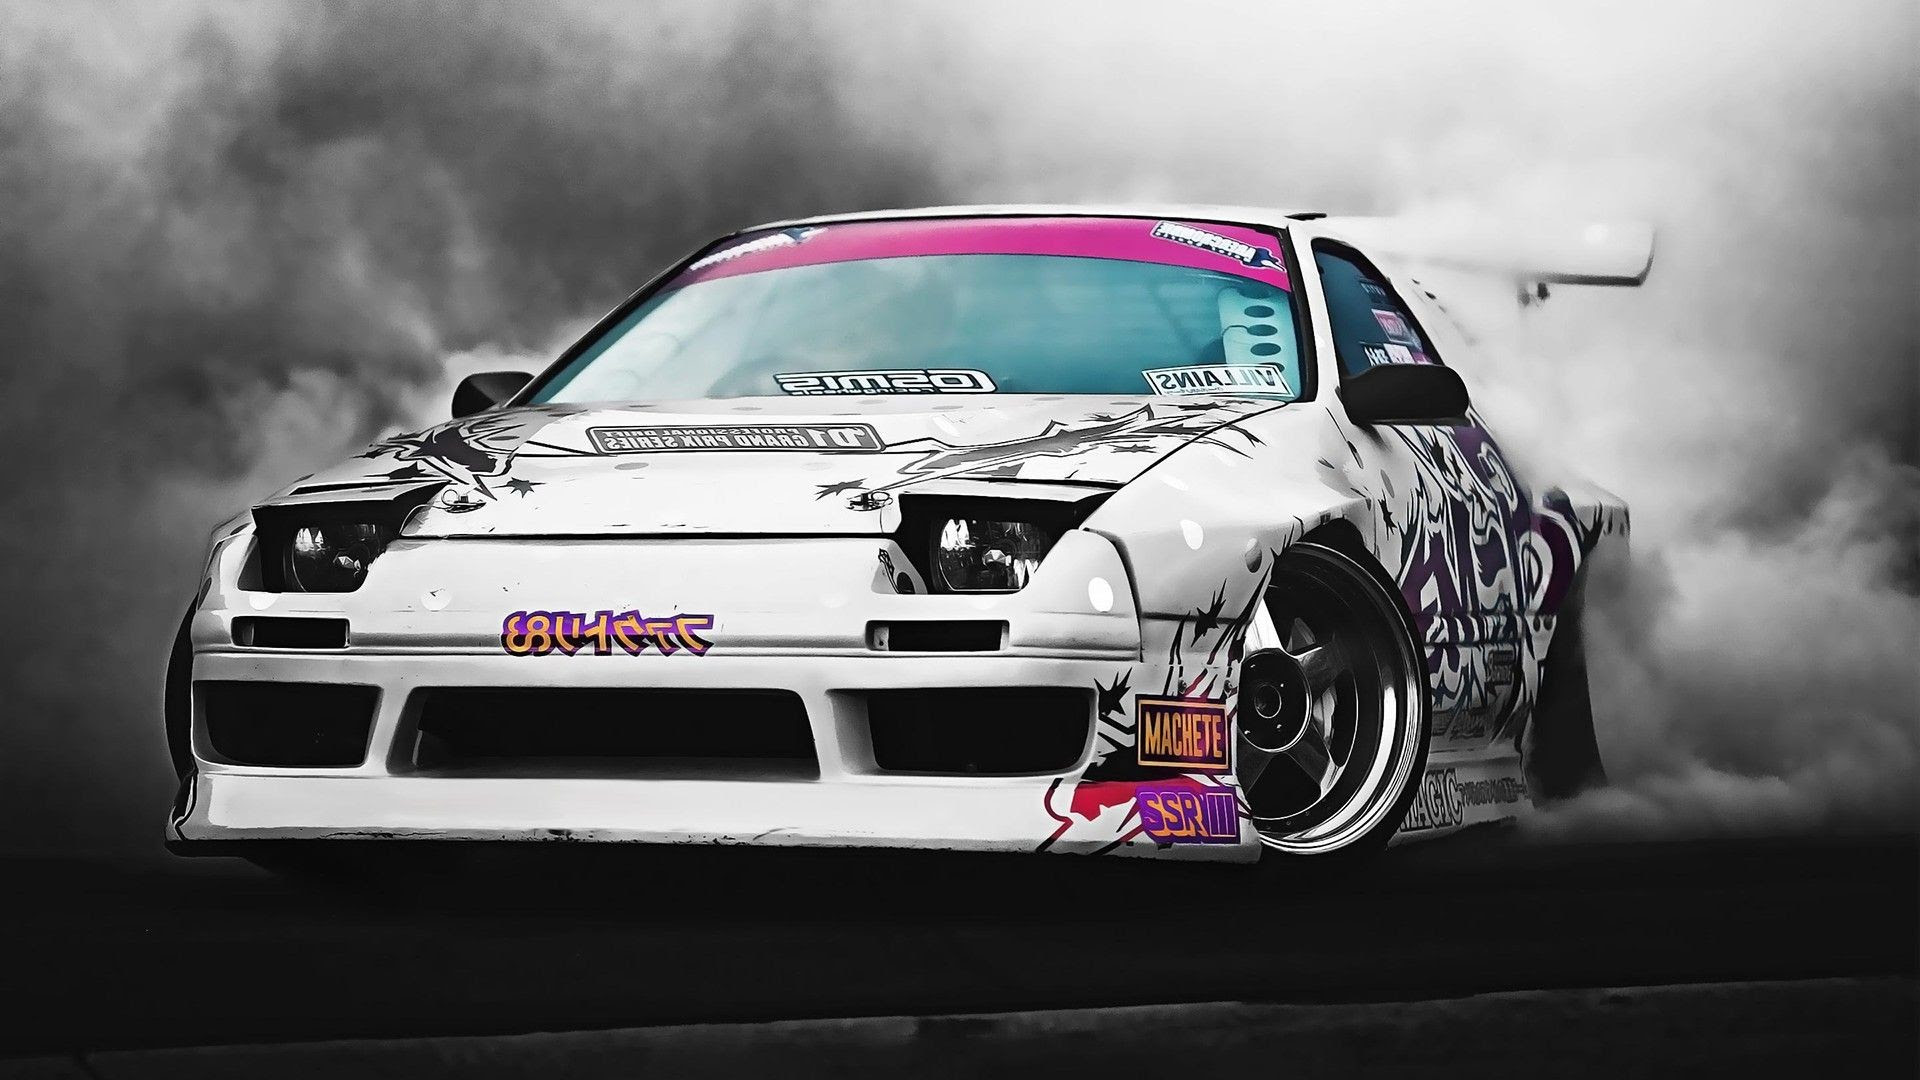 Drift Car Wallpapers 69 Images